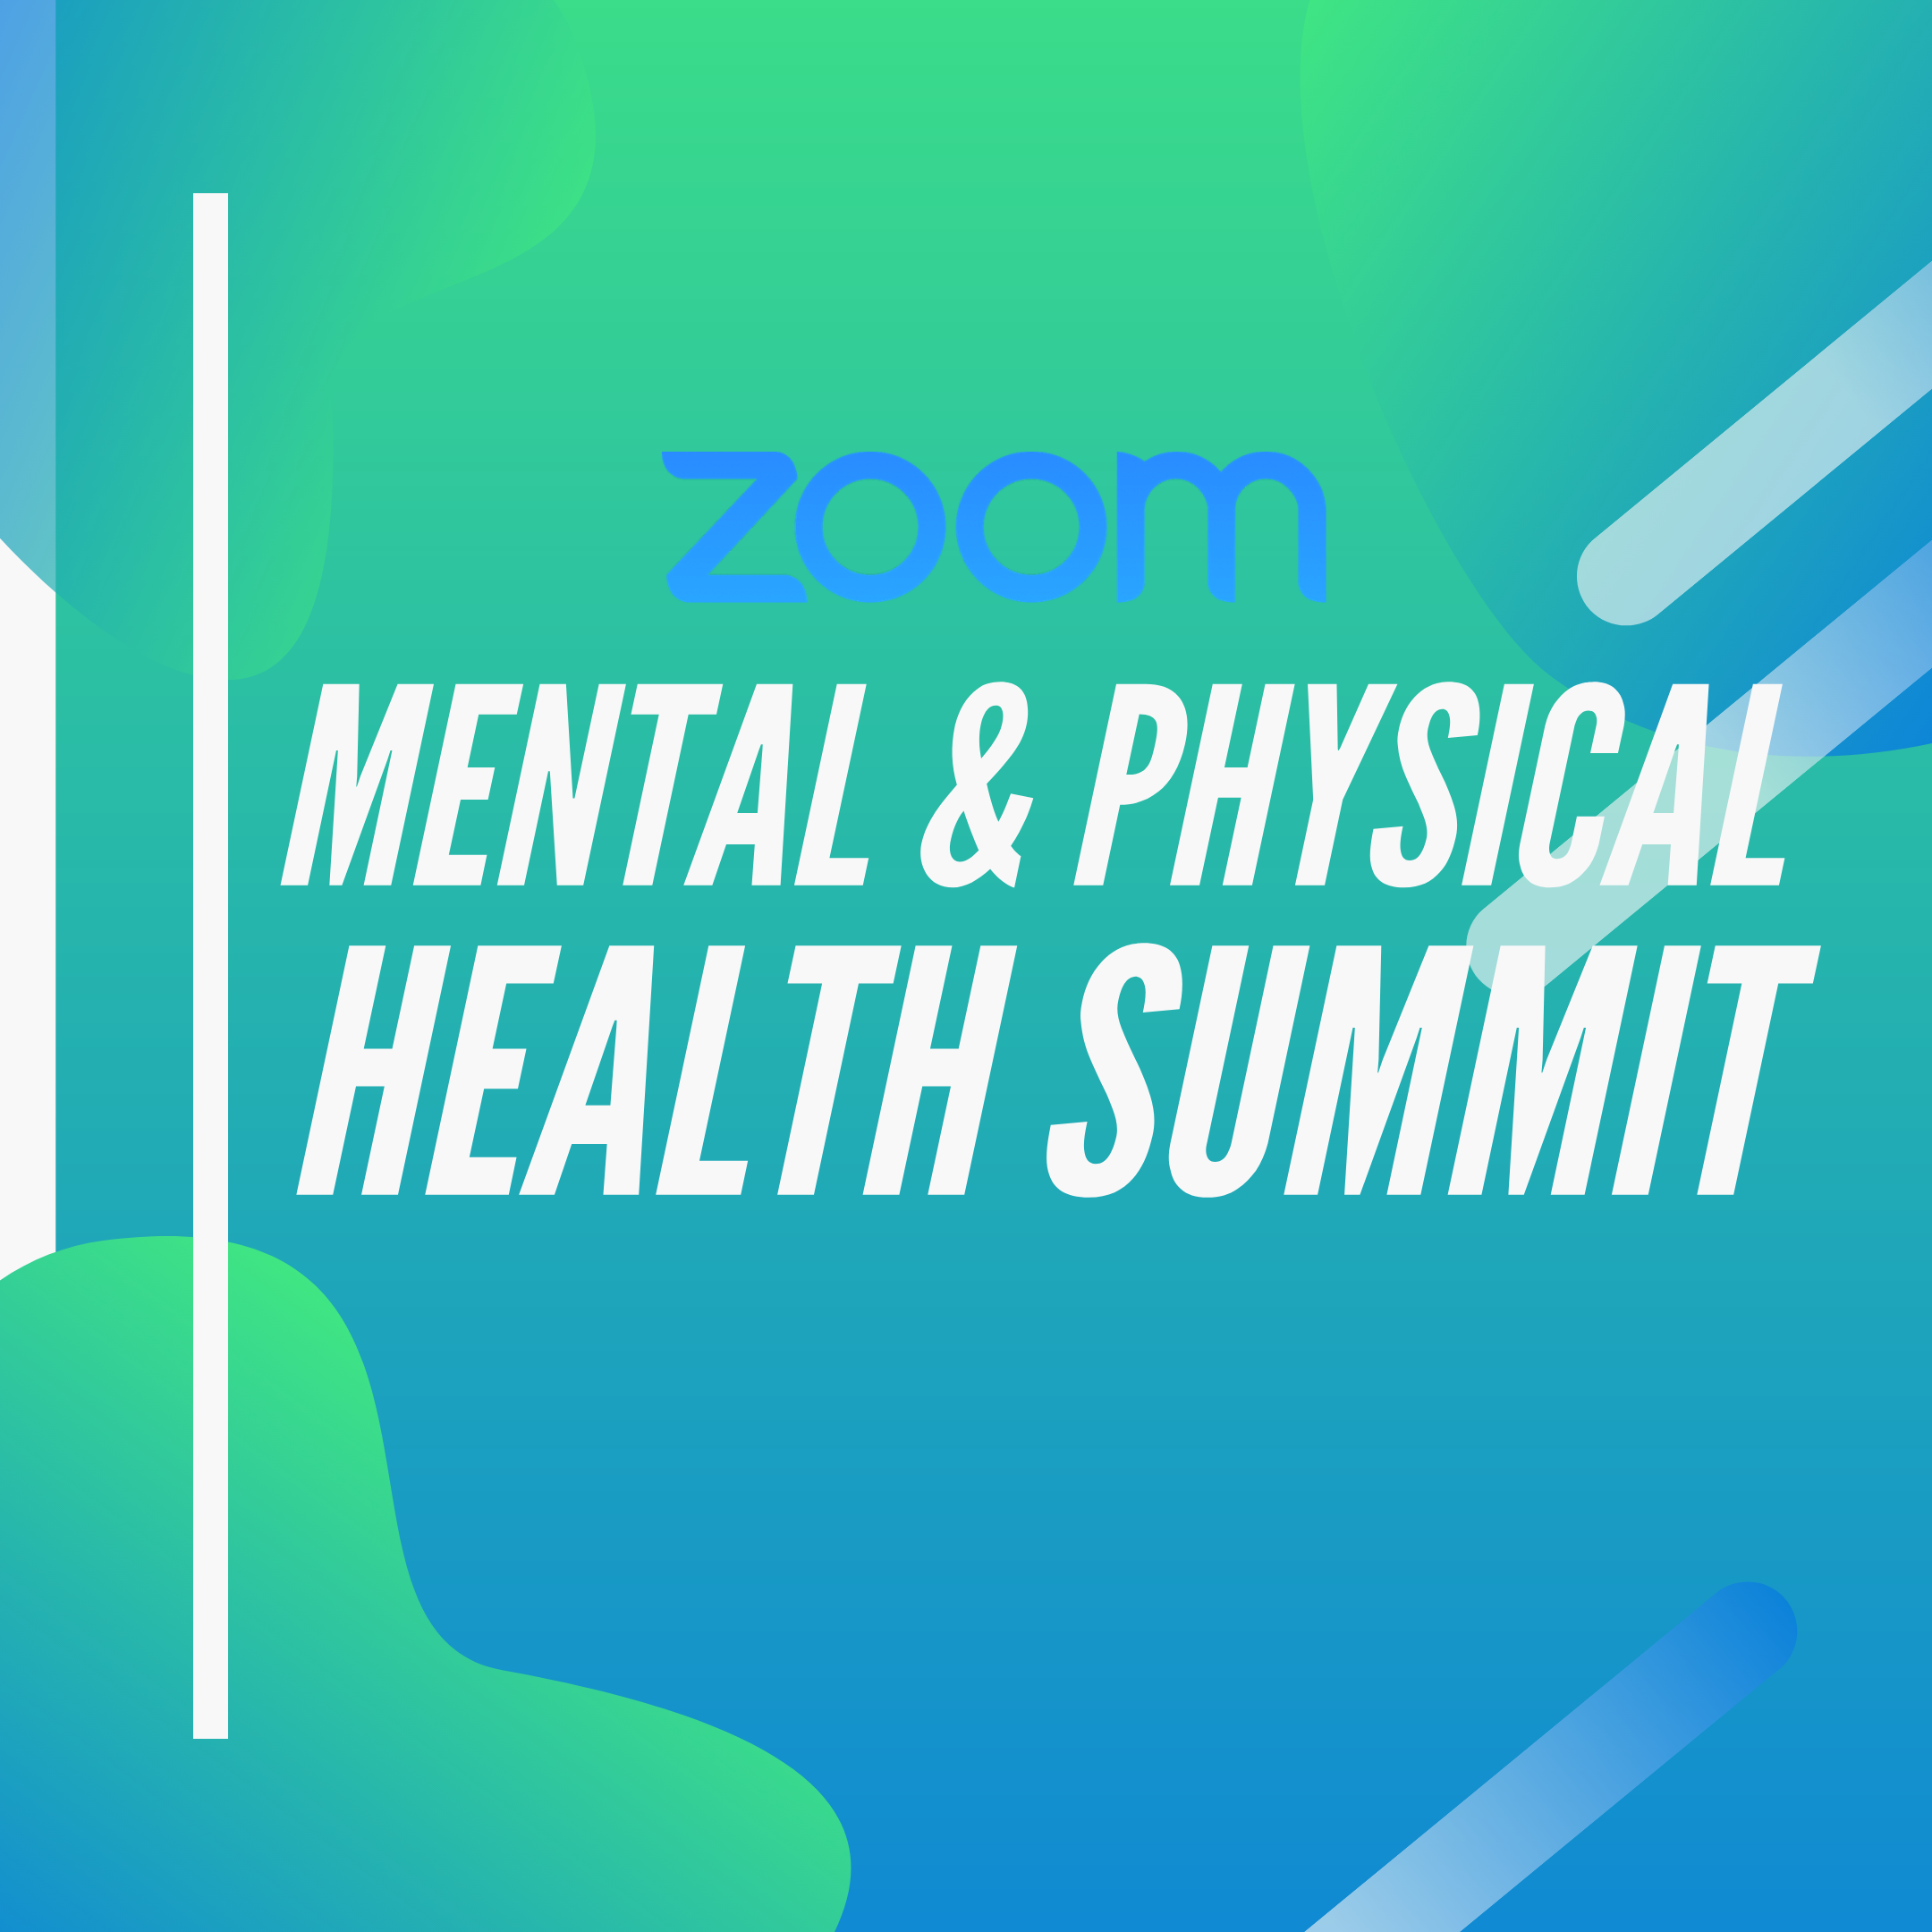 The Ashe Academy Mental & Physical Health Summit 2020